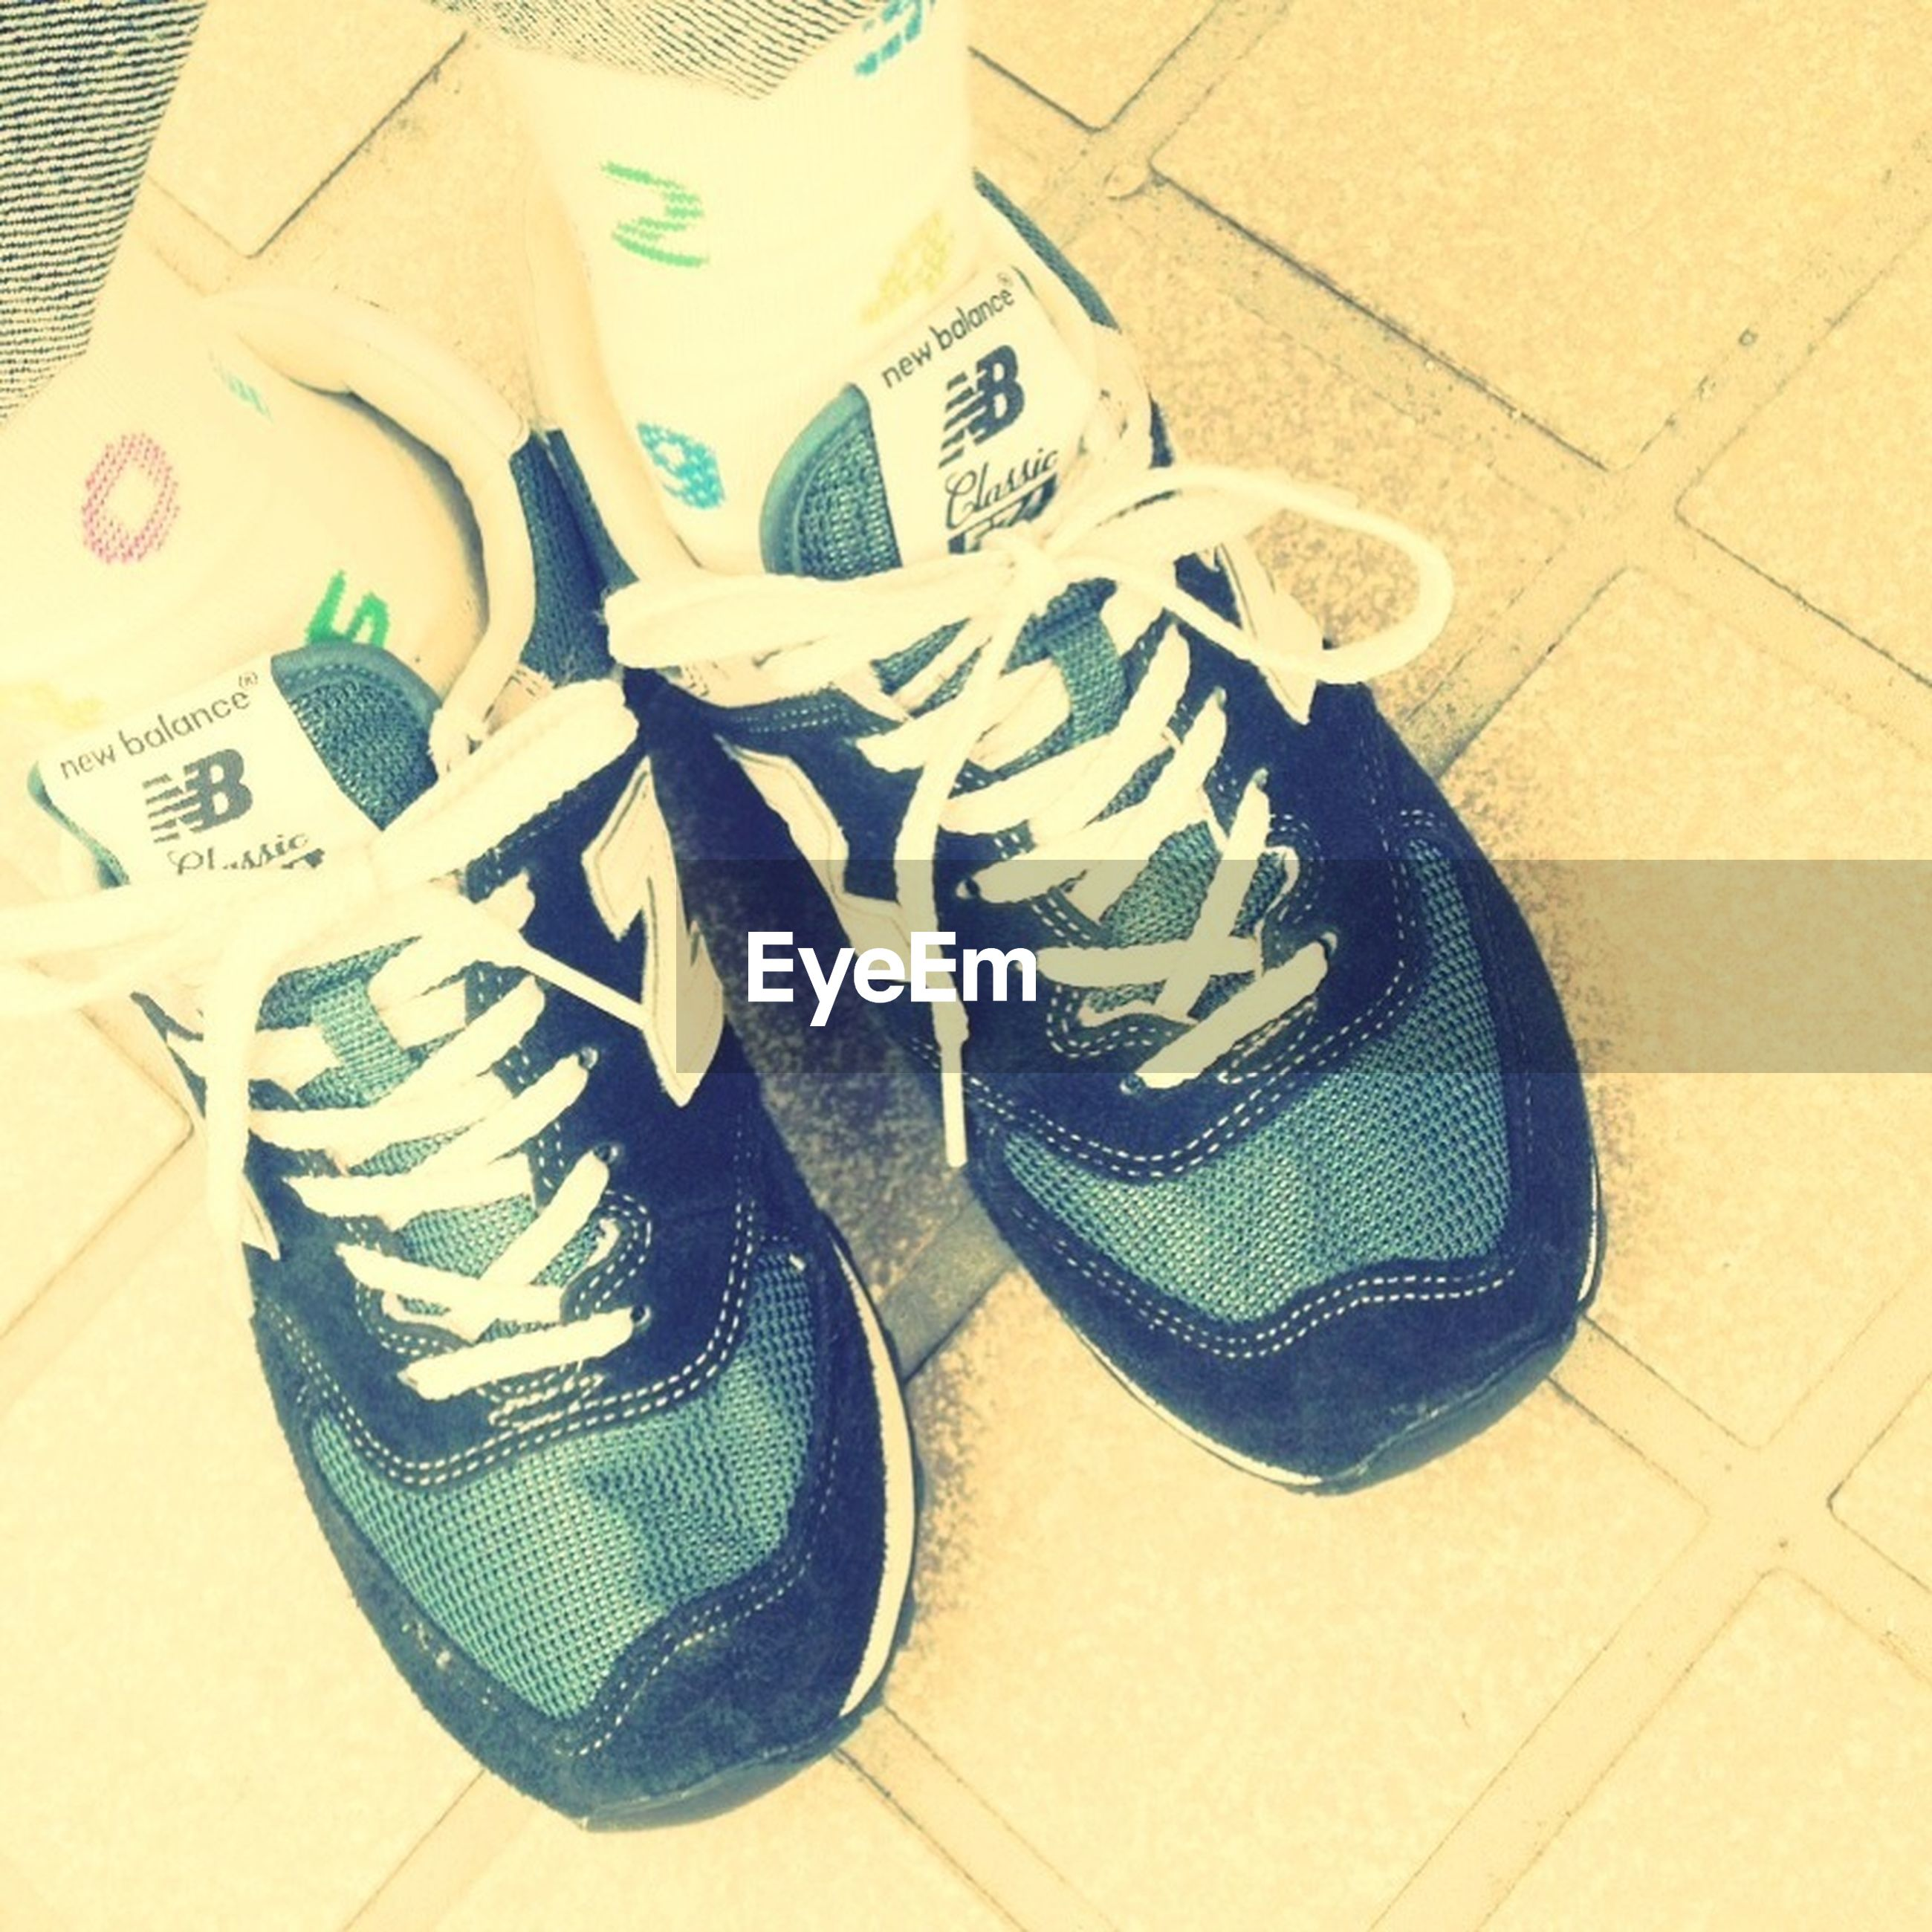 indoors, high angle view, still life, shoe, table, flooring, close-up, directly above, communication, footwear, text, tiled floor, pair, paper, low section, absence, no people, jeans, floor, choice